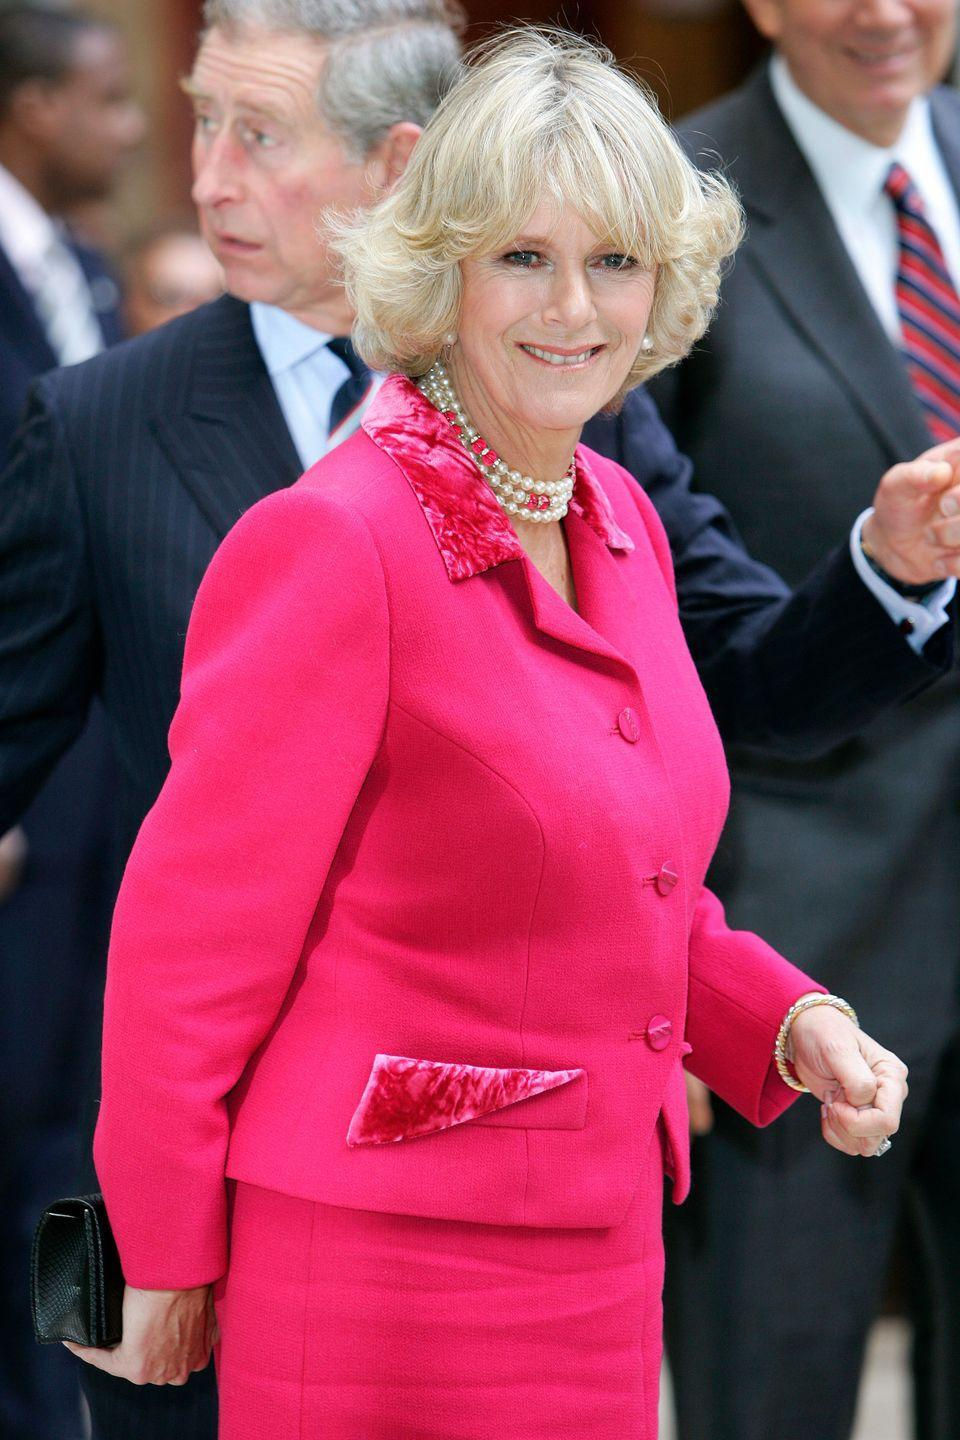 <p>Camilla didn't shy away from a major pink moment, combining her hot pink suit with fuchsia gems for a visit to the British Memorial Garden in New York City in 2005.</p>